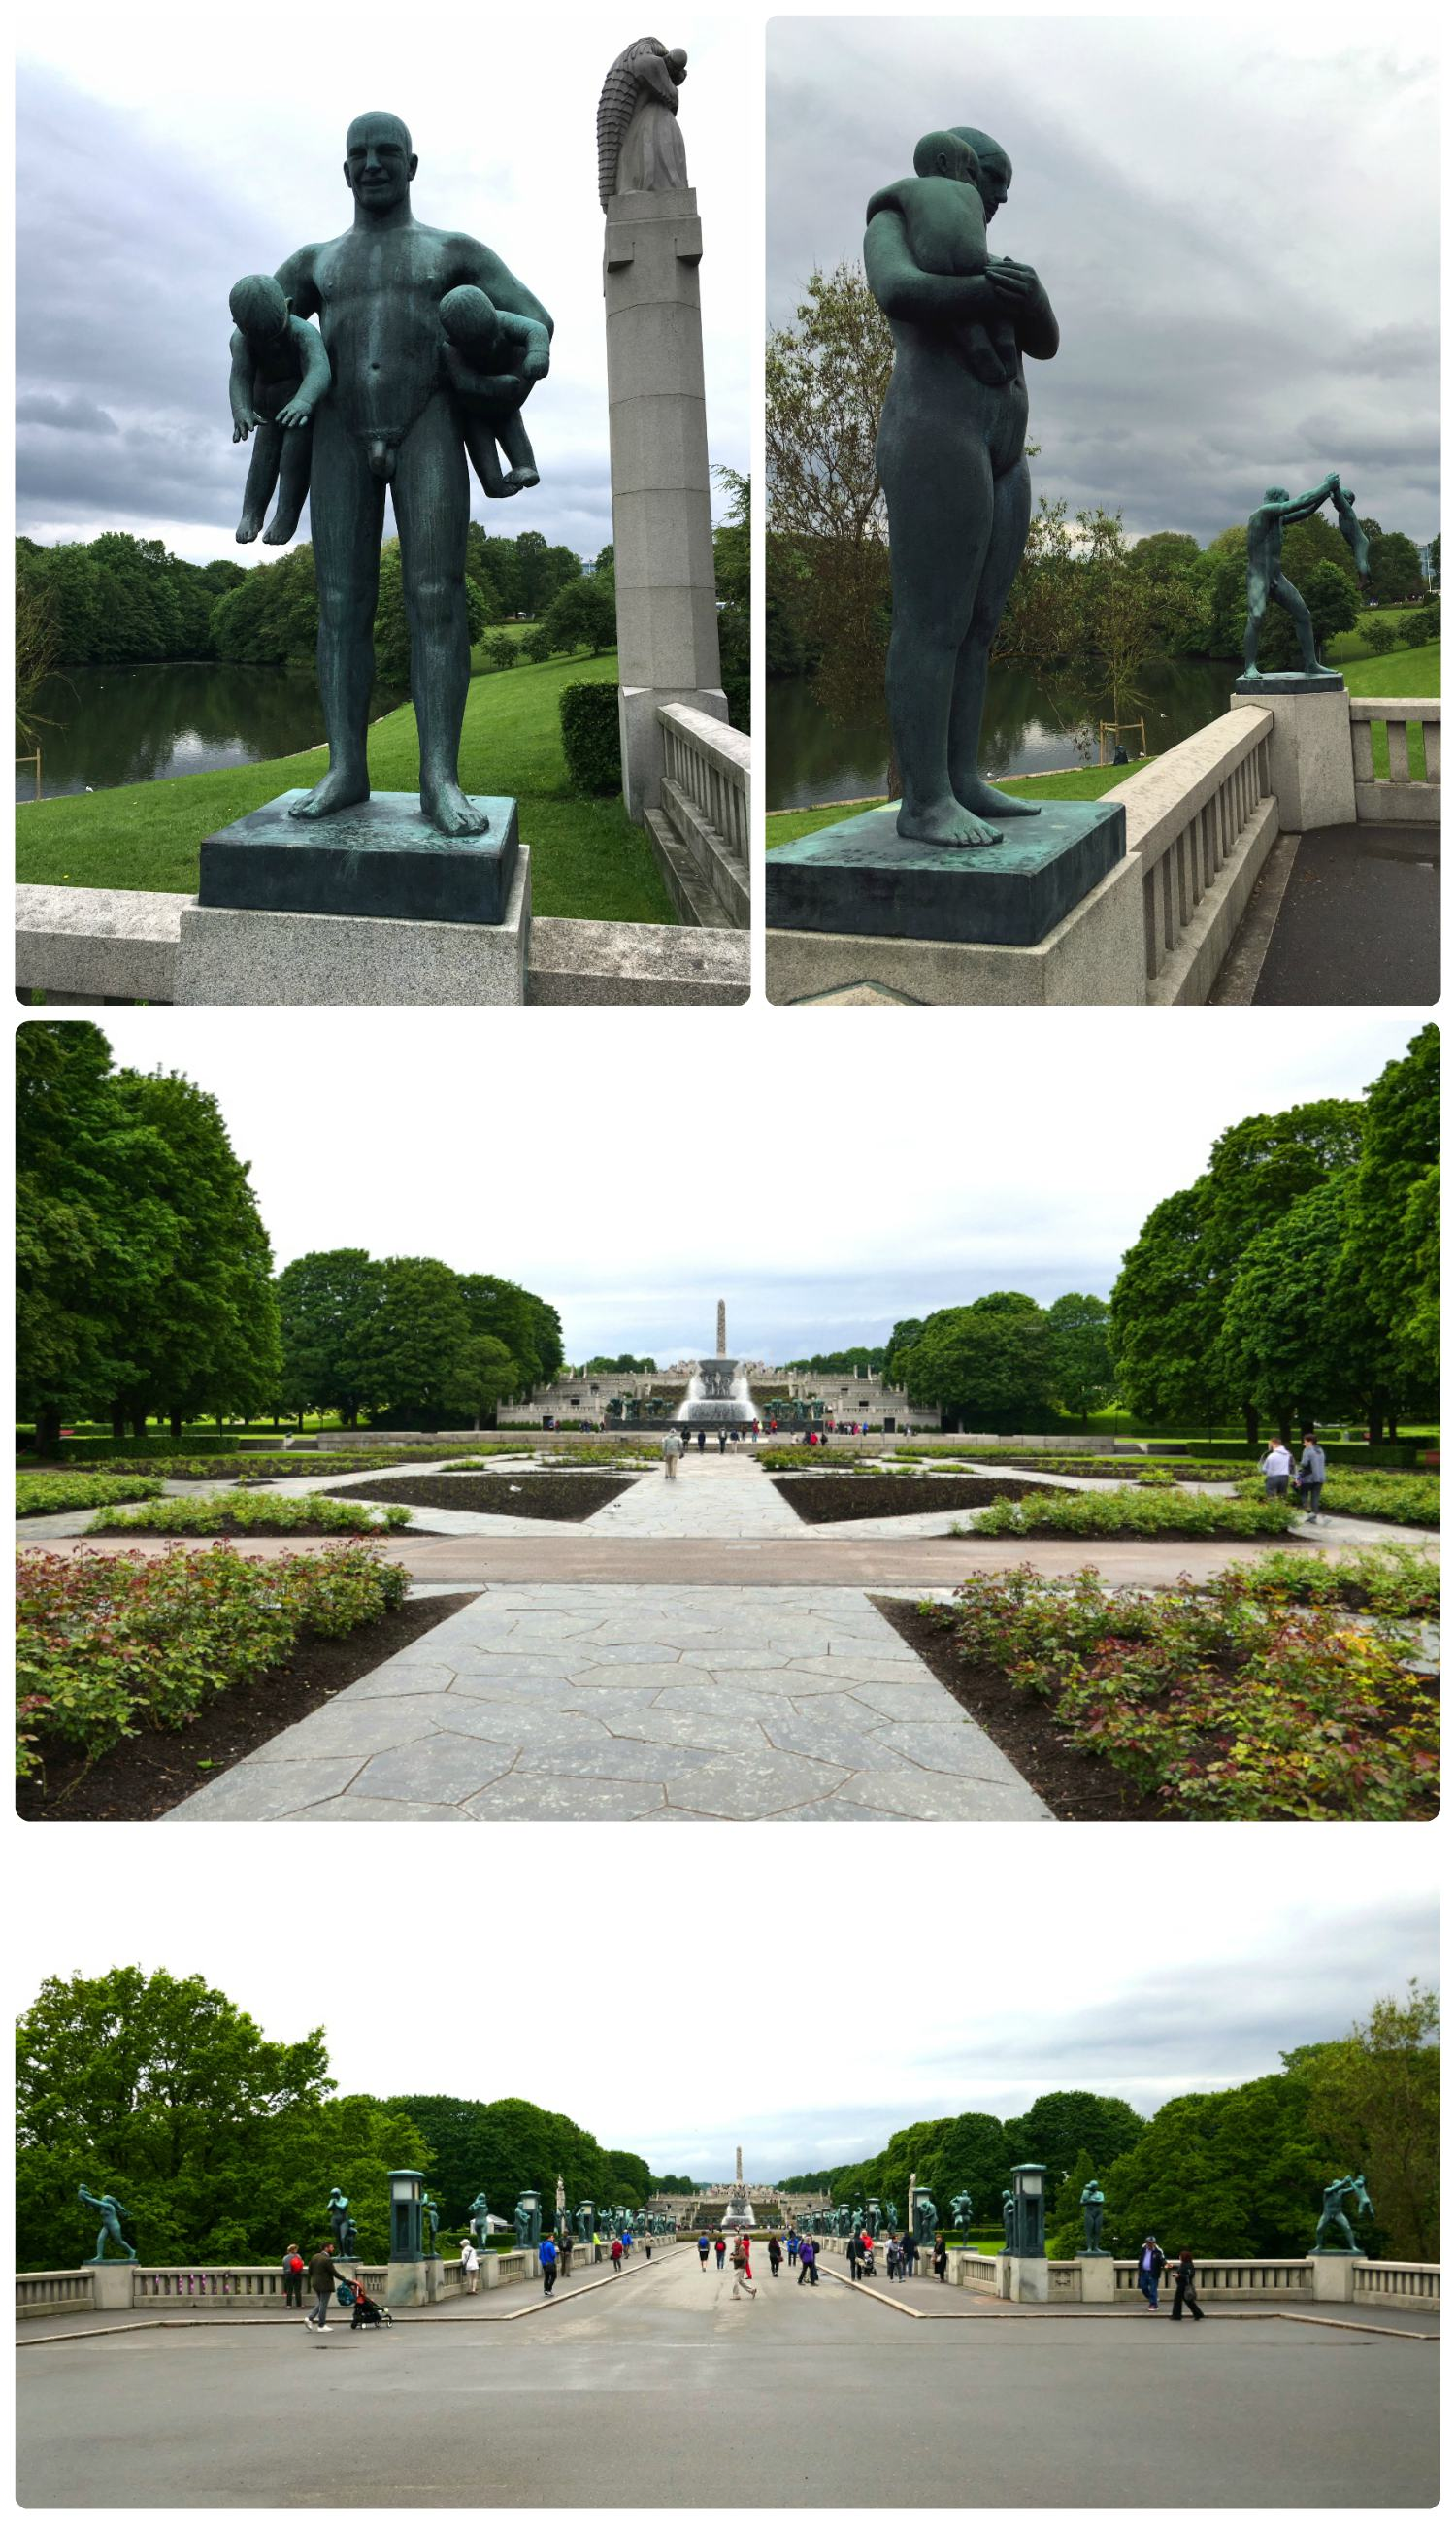 All images taken at The Vigeland Park. Clockwise (from the top): A sculpture of a man holding two babies, two sculptures located on the bridge in the park, after crossing the bridge the park opens to the fountain and the monolith, the view looking down the middle of the park - over the bridge with the fountain and monolith.